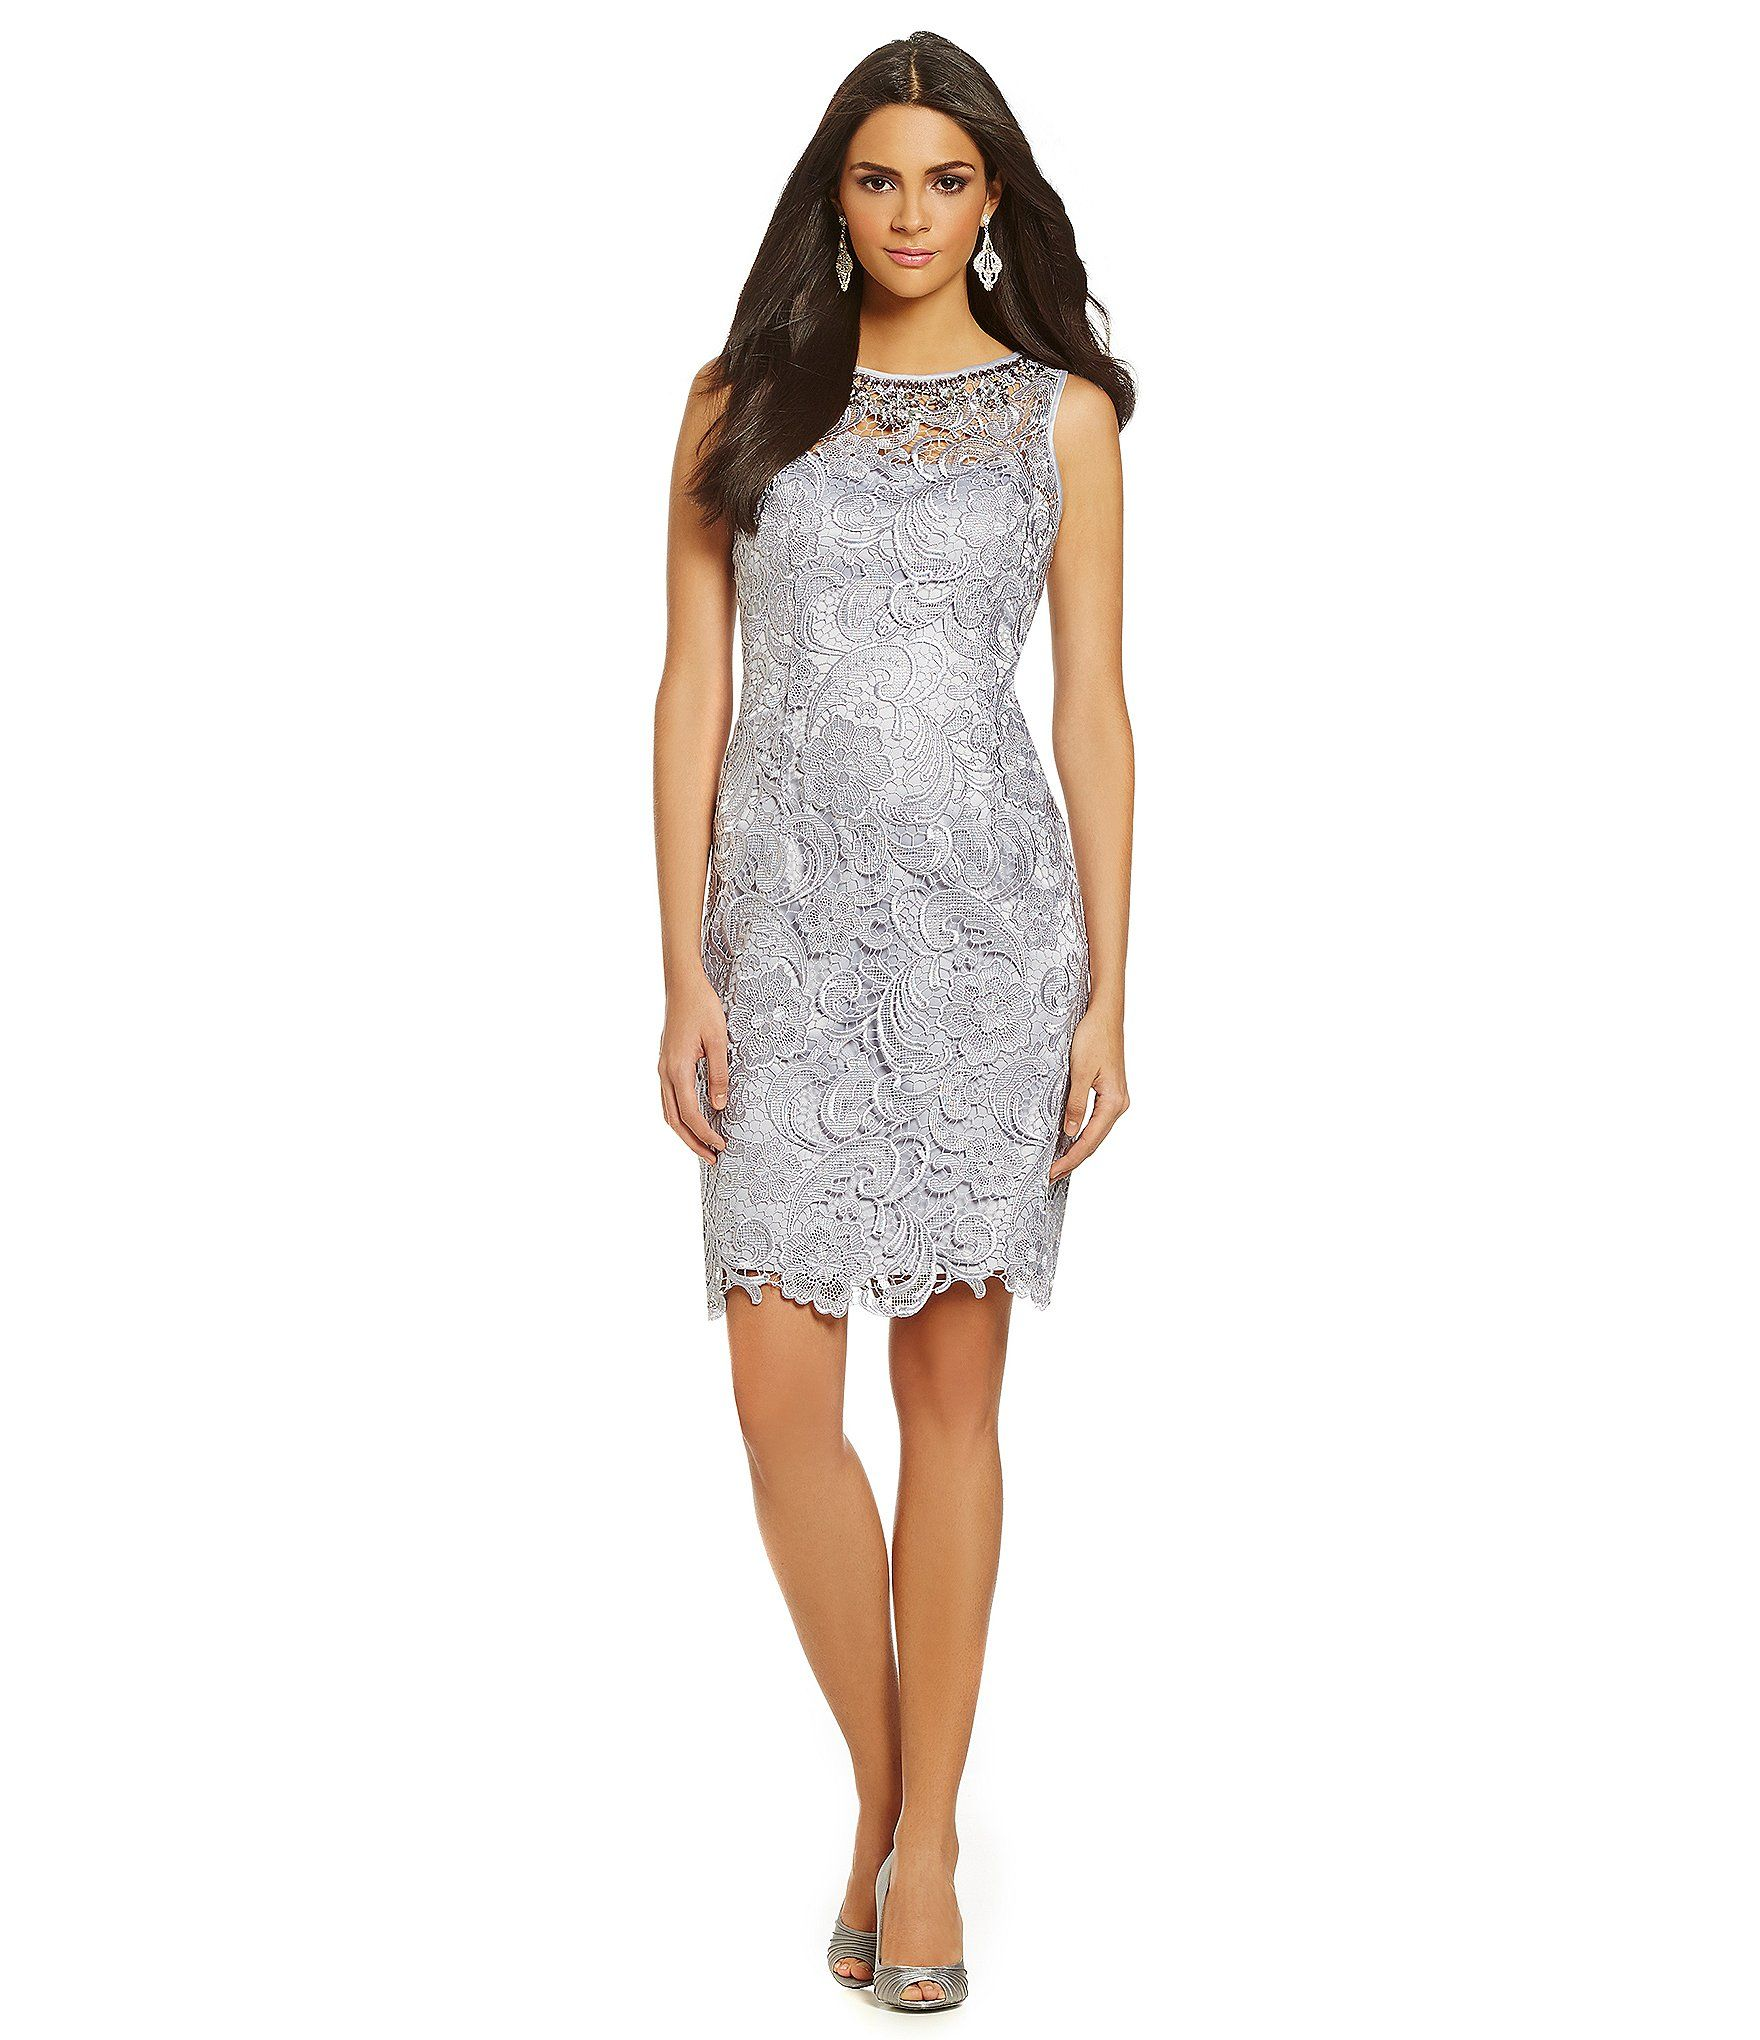 Adrianna papell embellished lace cocktail dress dillards